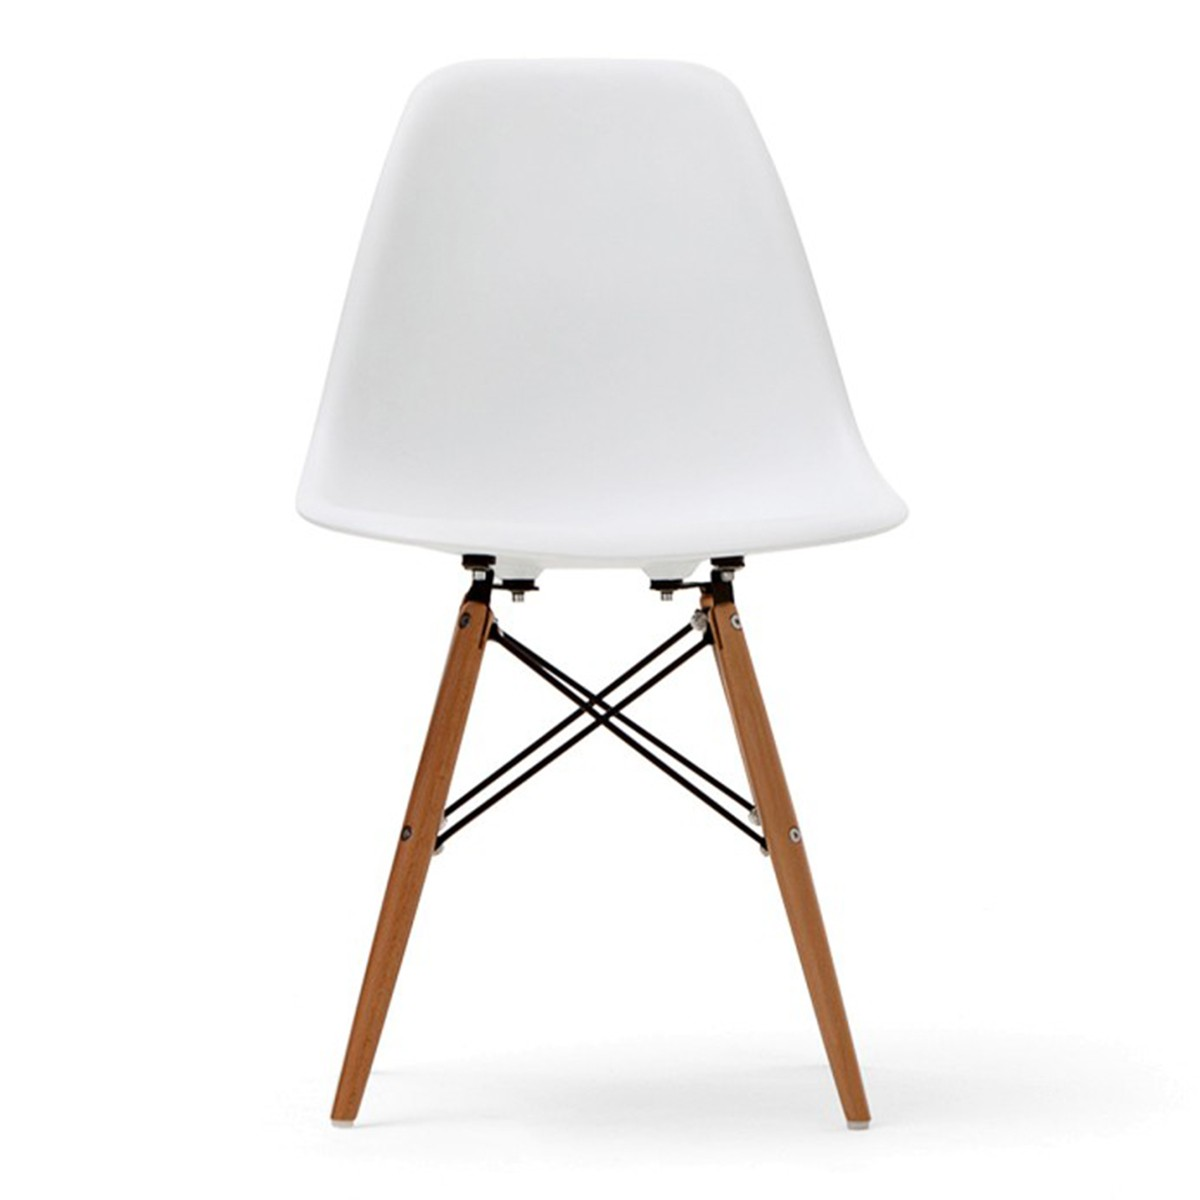 Molded Plastic Chair in White with Wood Legs (T811E006-WT)